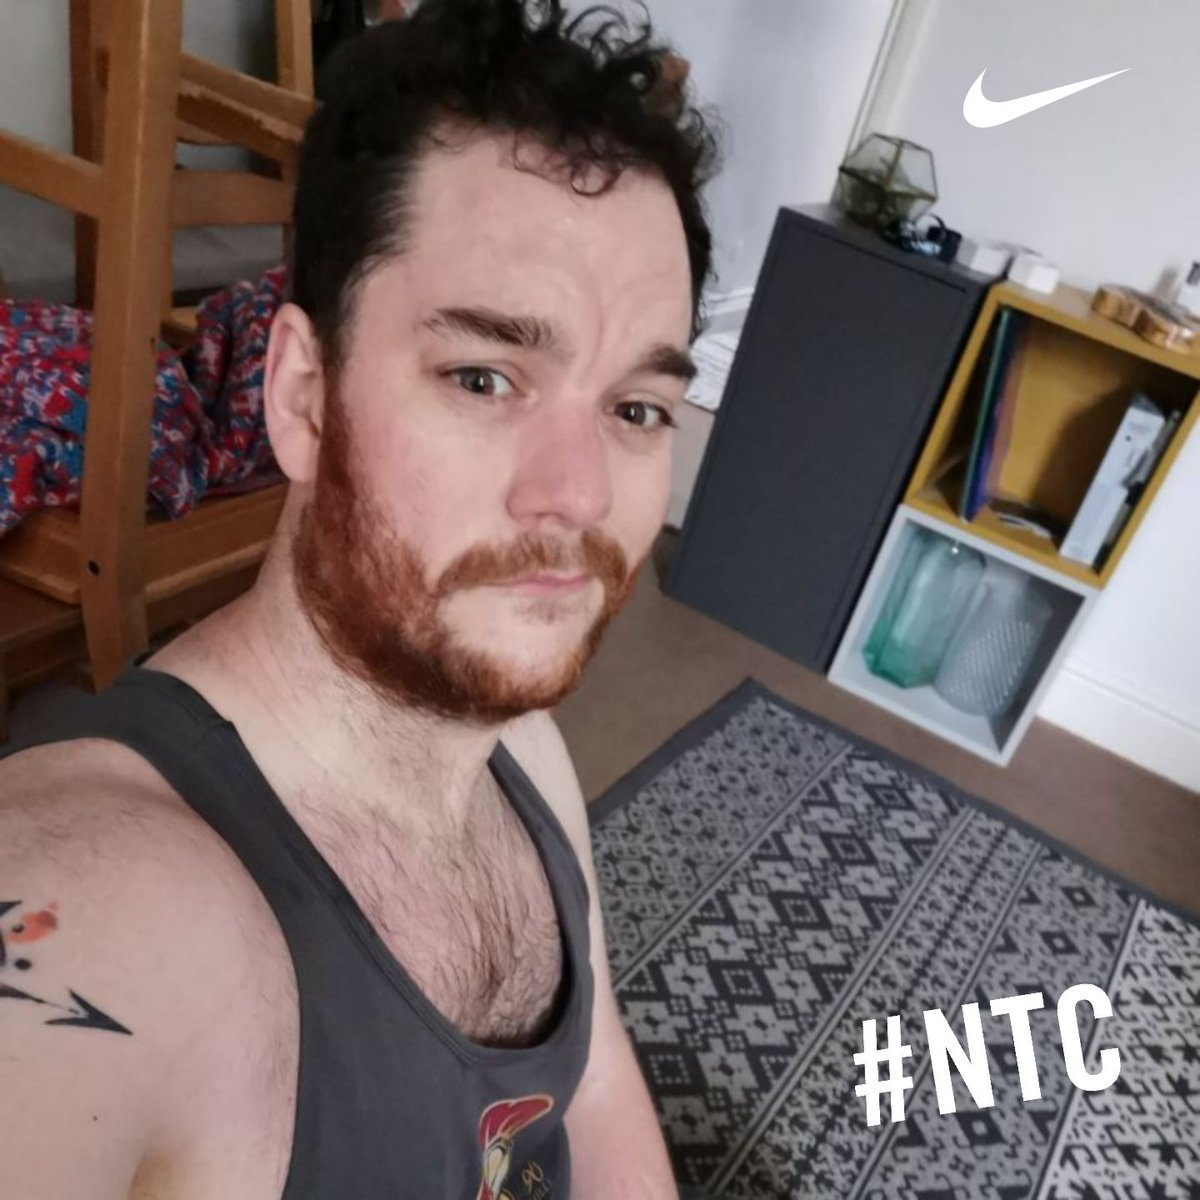 Morning Jog with the dog, followed by a tortuous working from Nike Training Club  #NTC #Niketrainingclub #workoutathomepic.twitter.com/PrAqpPVpon